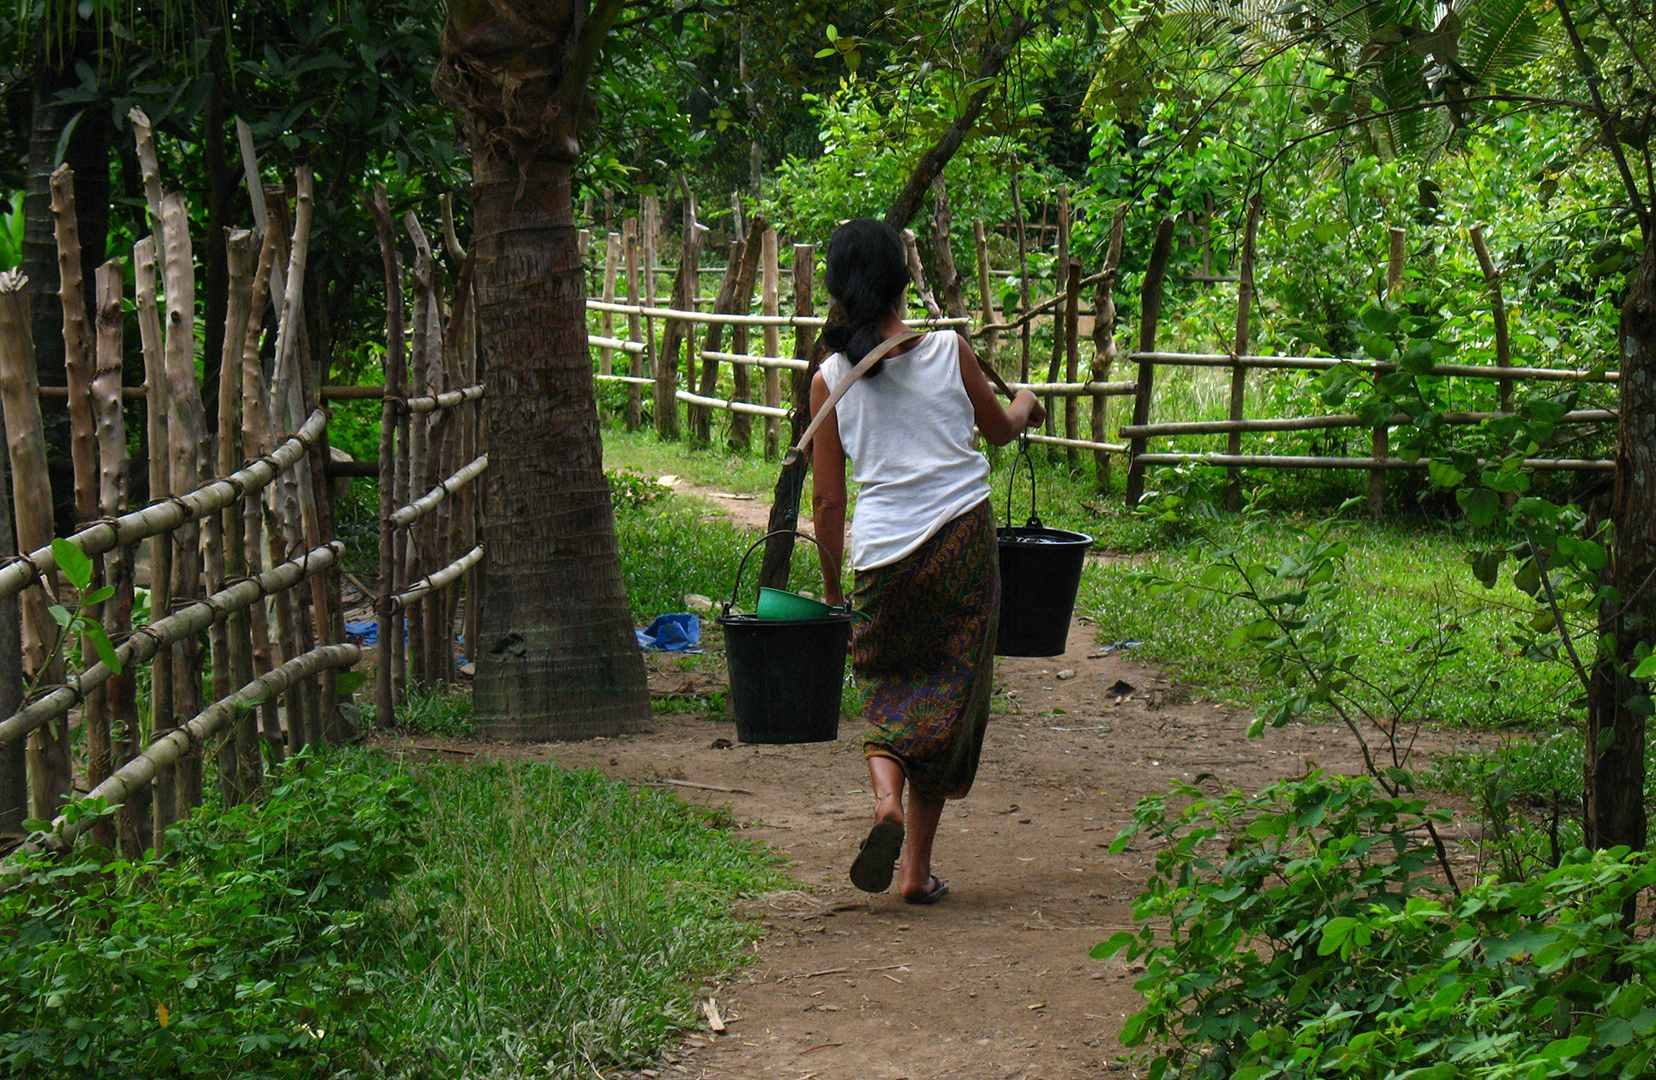 a local women walking with water baskets